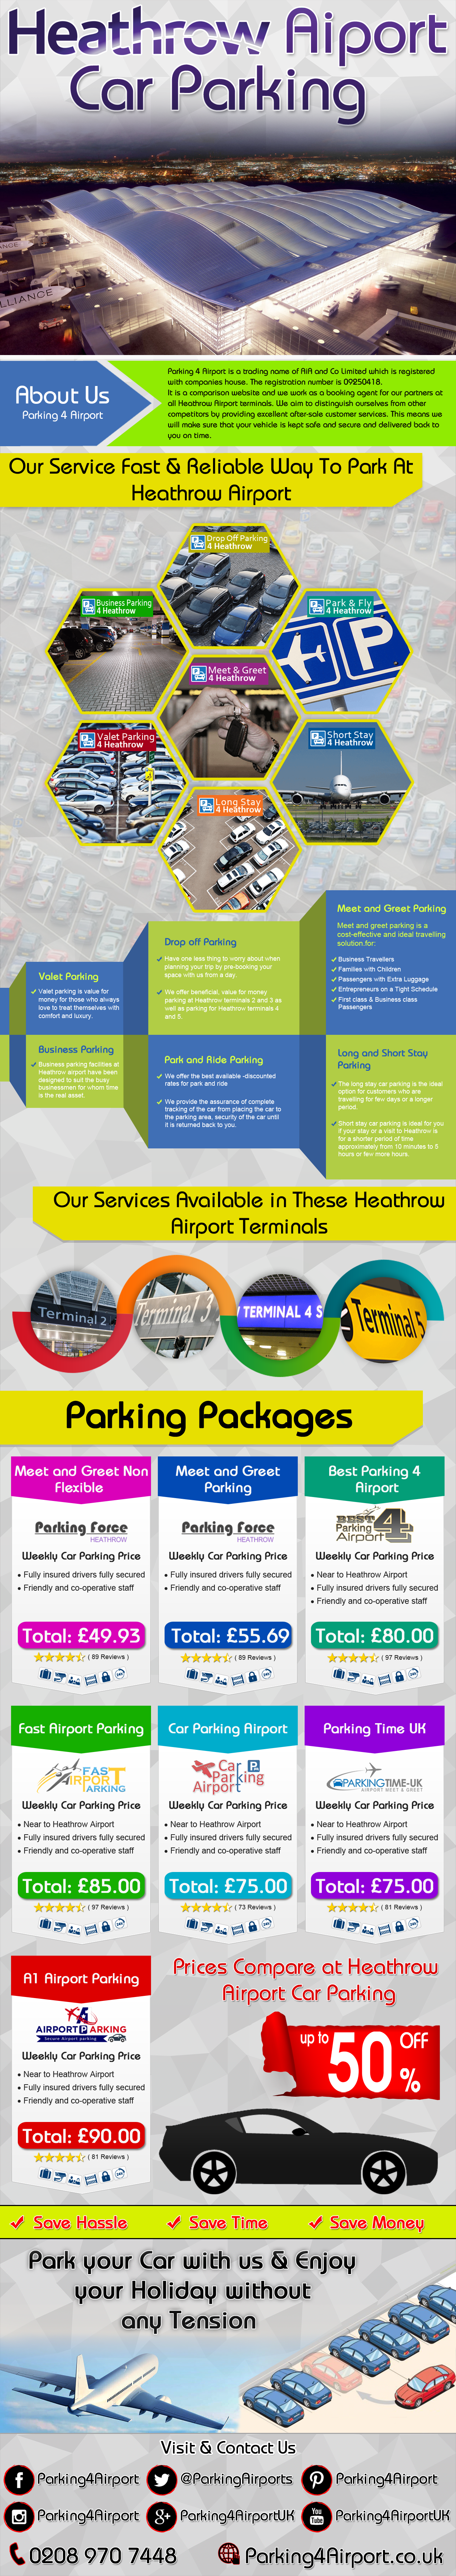 52 best valet parking 4 heathrow images on pinterest park parks and 1 kristyandbryce Images